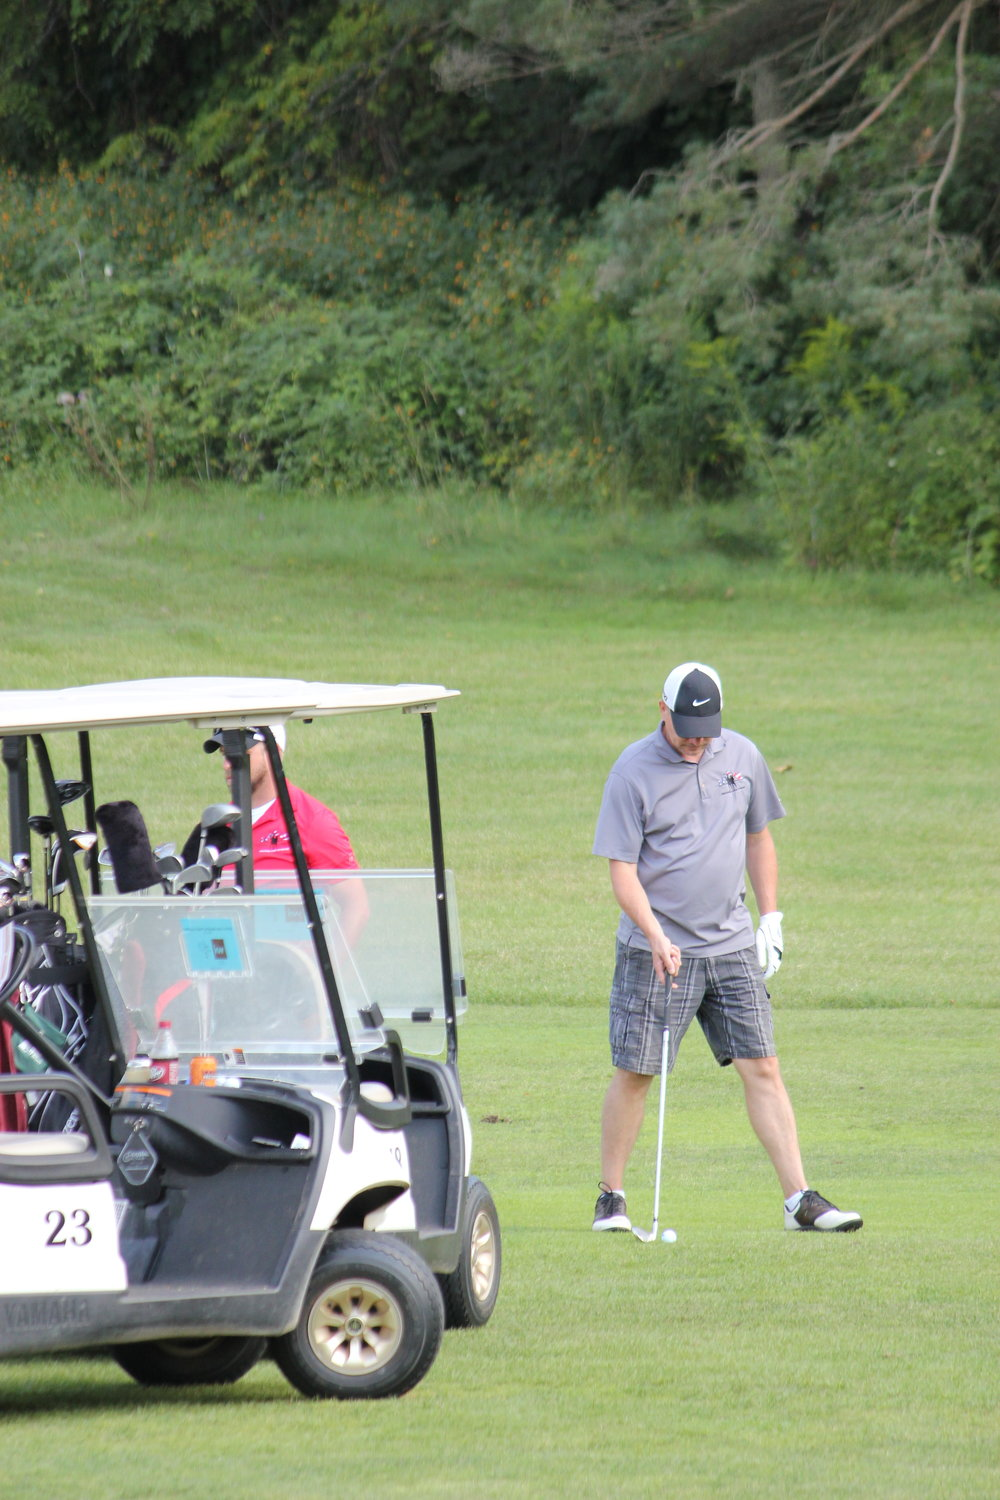 IMG_2251 Rick FFO Golf Outing 2015 copy.JPG